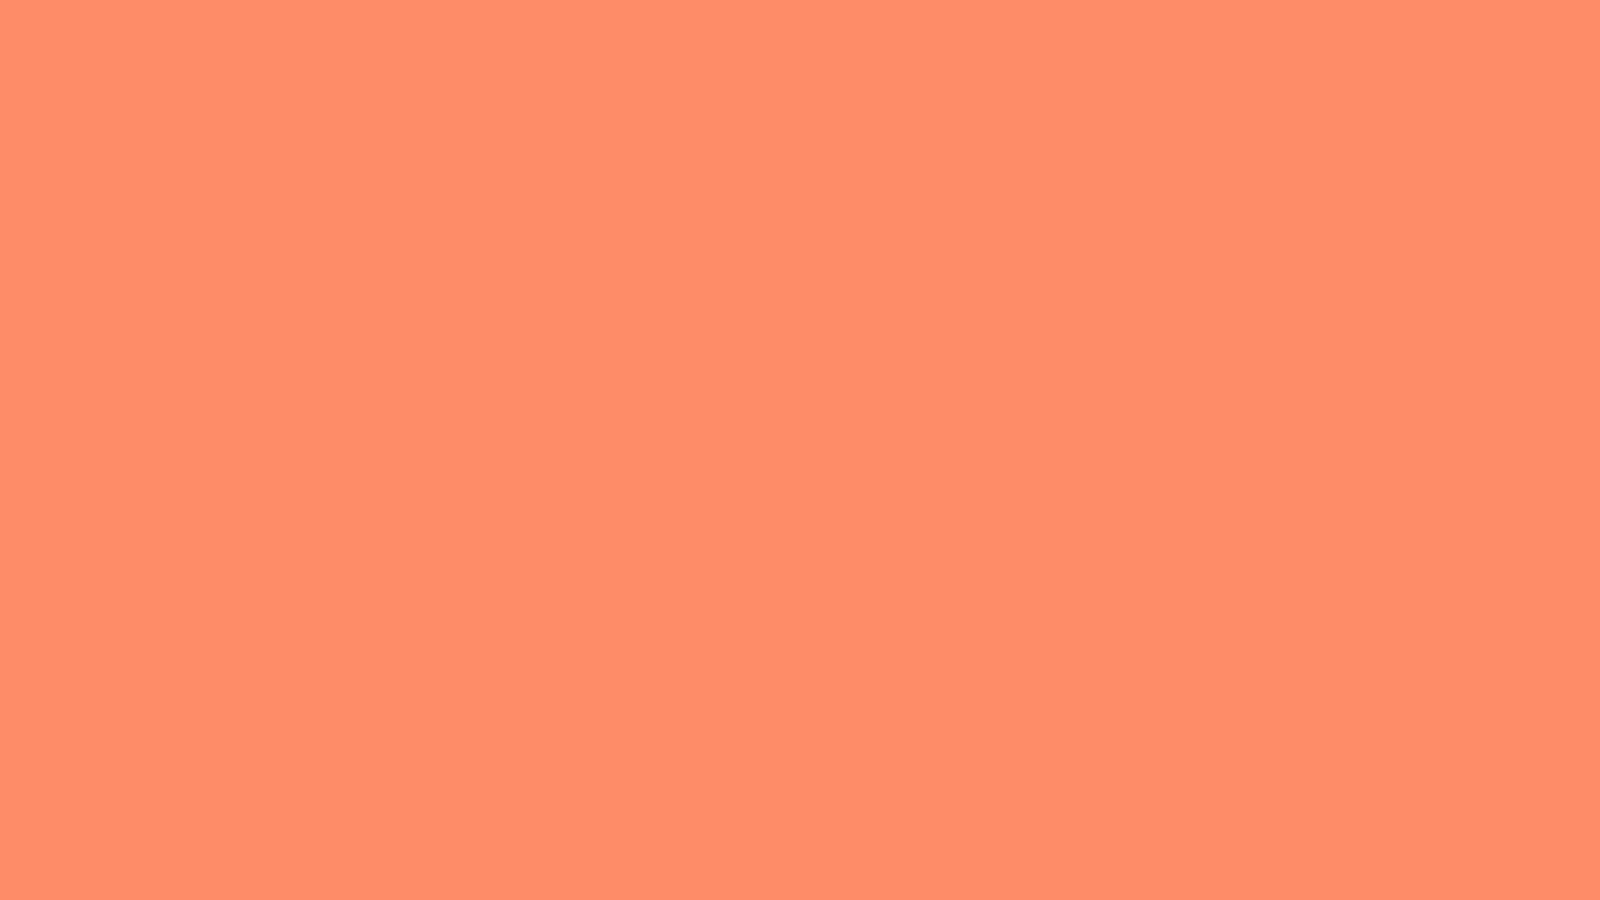 1600x900 Salmon Solid Color Background